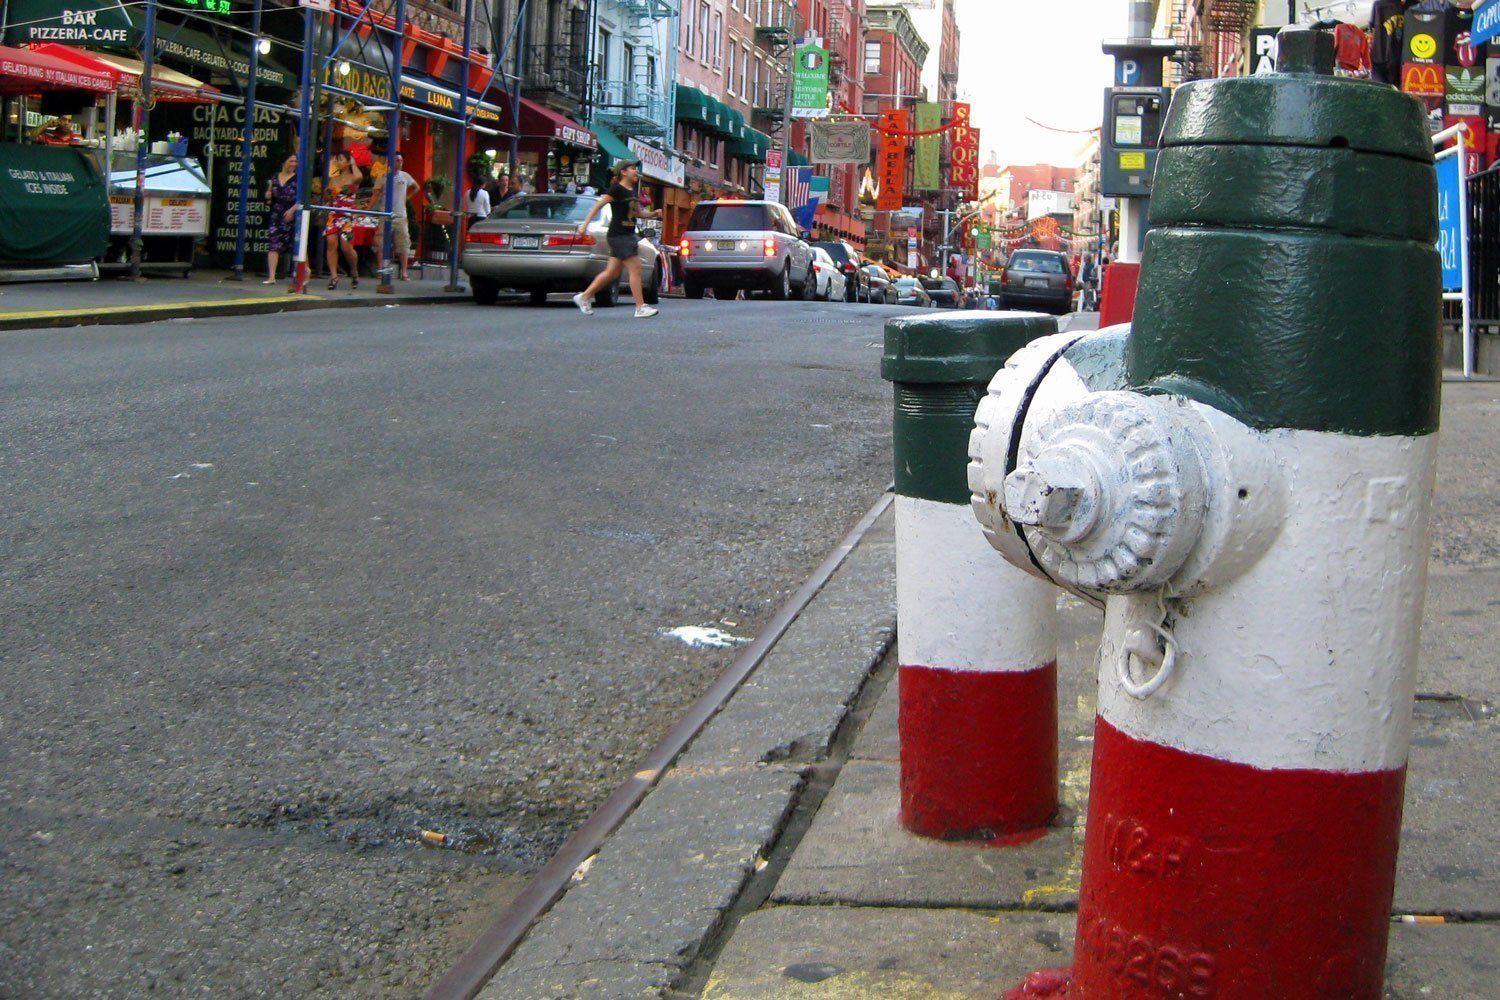 Italian colors on fire hydrants in Little Italy, Manhattan NYC